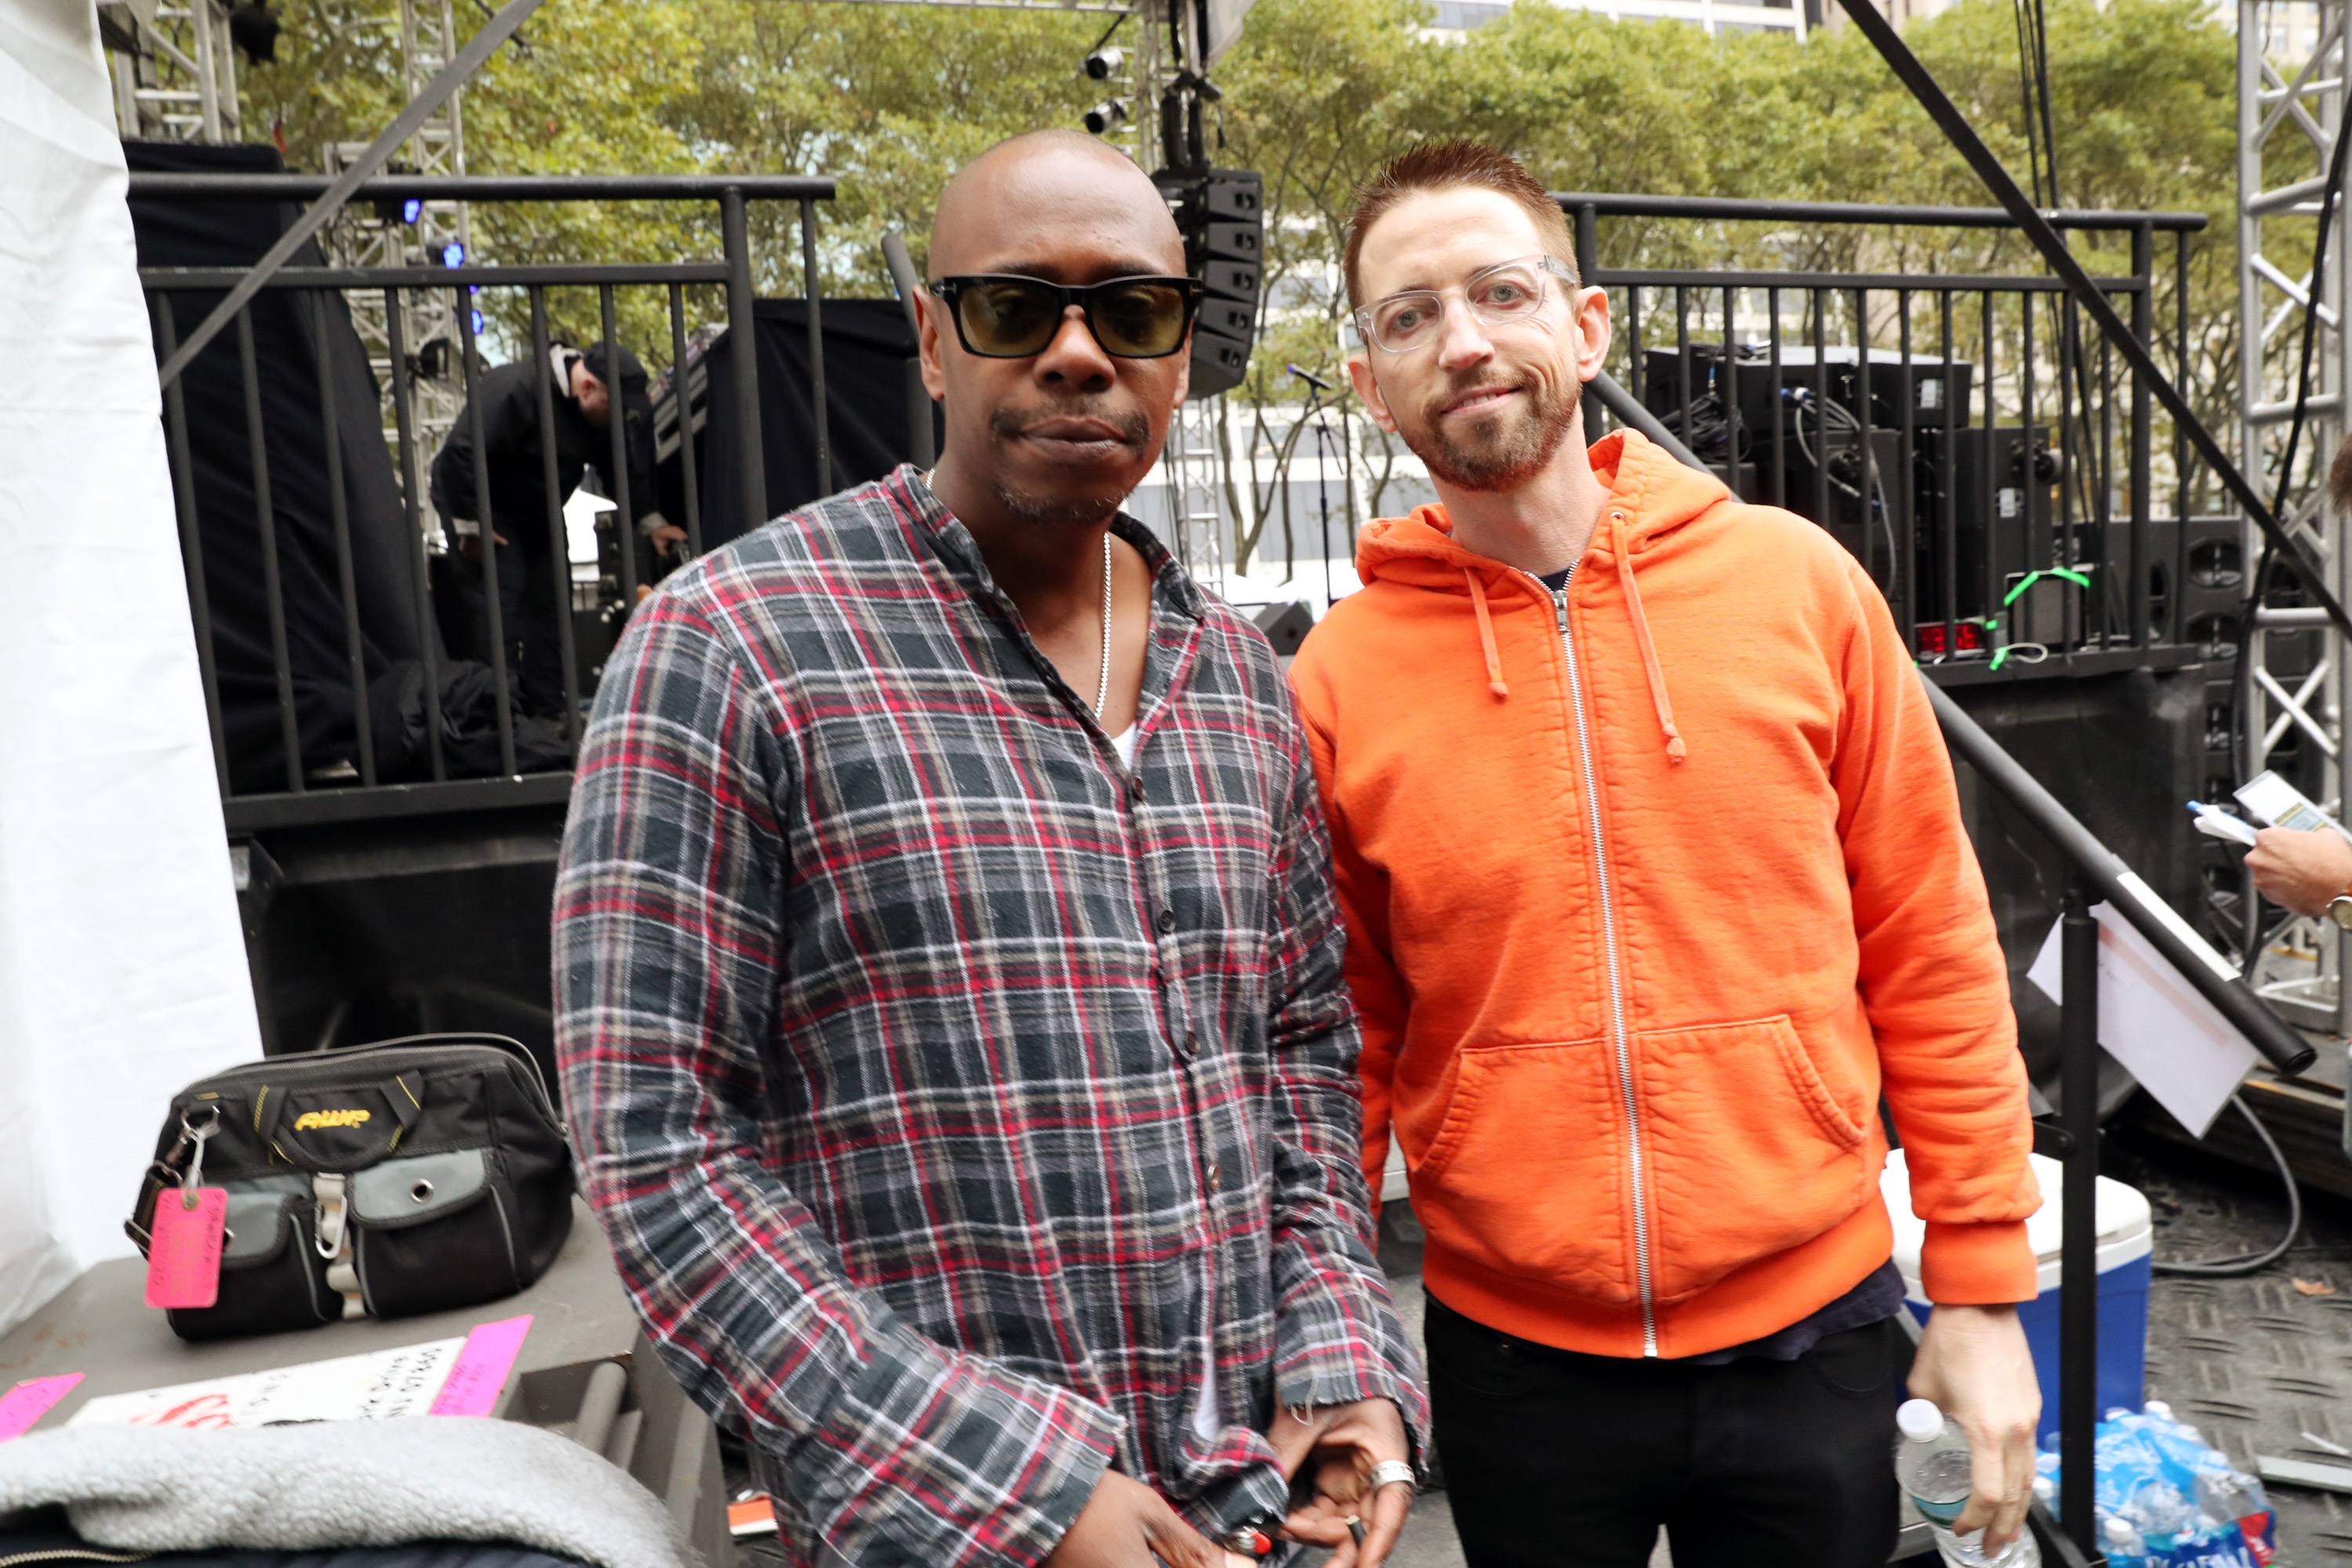 Neal Brennan and Dave Chappelle